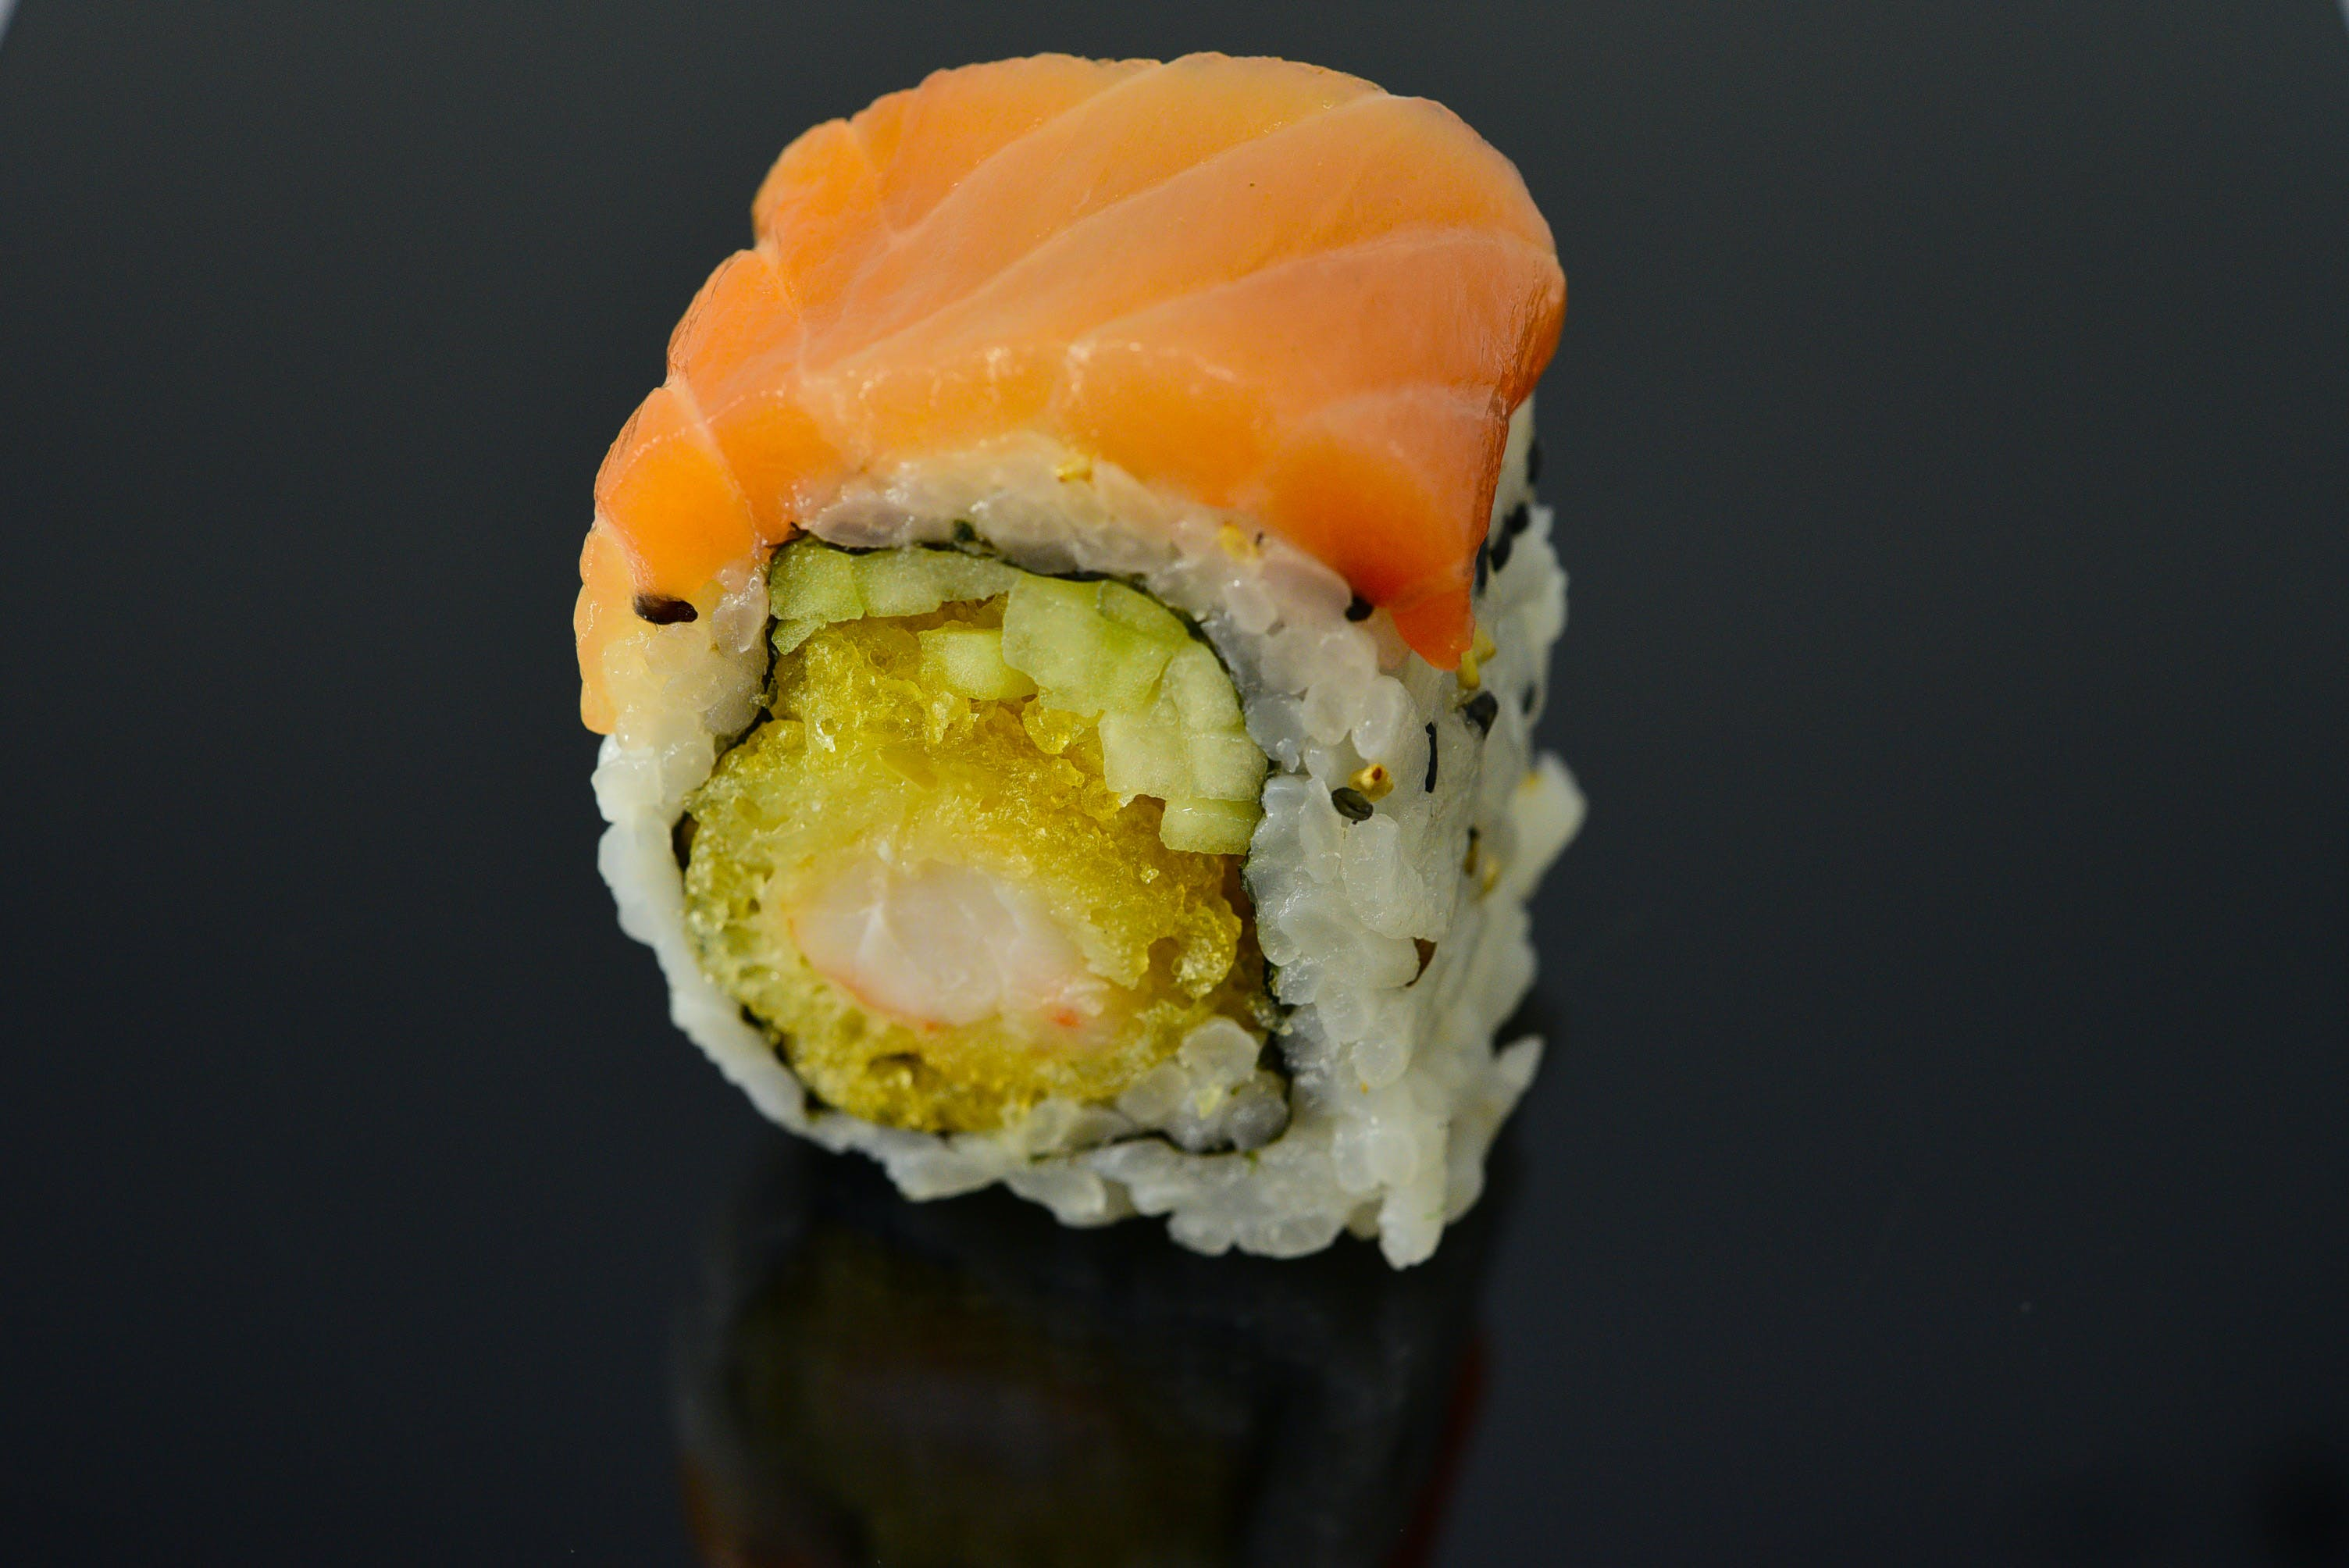 Lake City Roll from Fin Sushi in Madison, WI